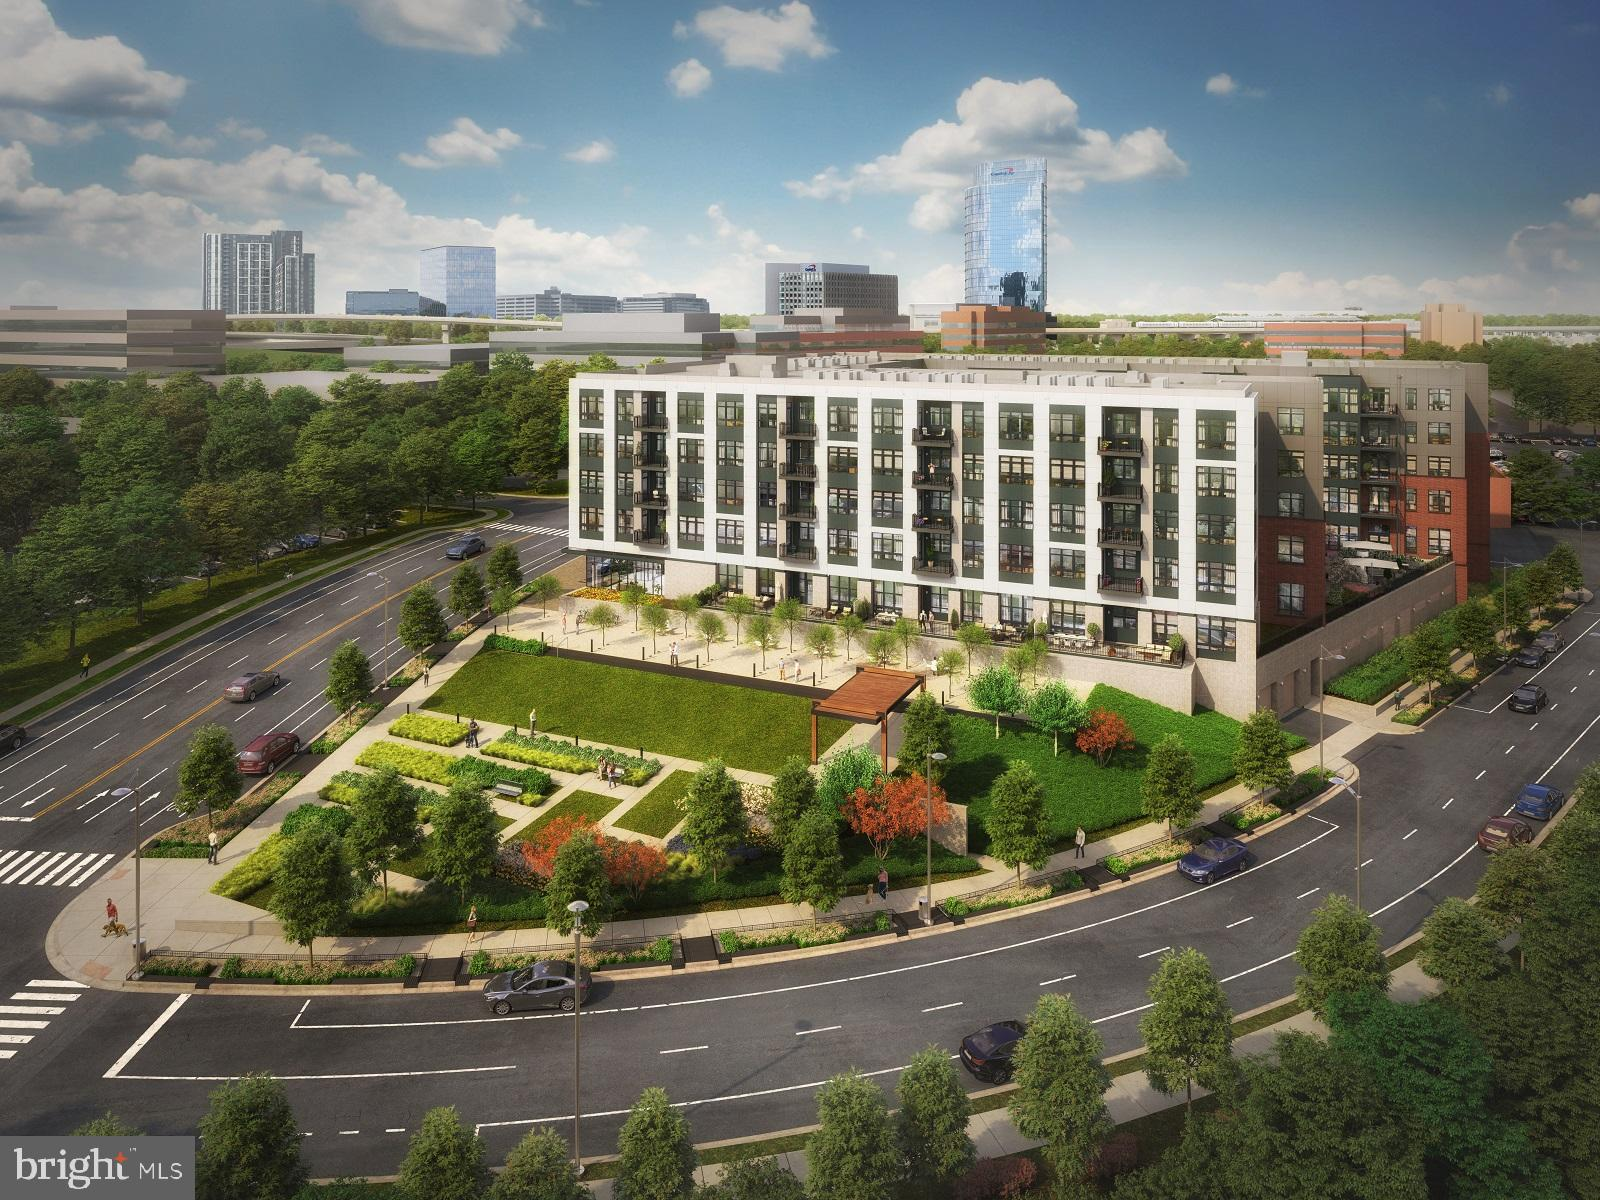 Now Selling near Tysons. The Bexley Condominium flats by NVHomes at McLean Metro Station. Under construction for Fall 2020 delivery. Choose from 1, 2, or 3 bedroom plans, all including private outdoor living, storage, and garage parking. Amenities incl. concierge, package acceptance, courtyard w/outdoor cooking, fitness center, & much more! Preview pricing underway!